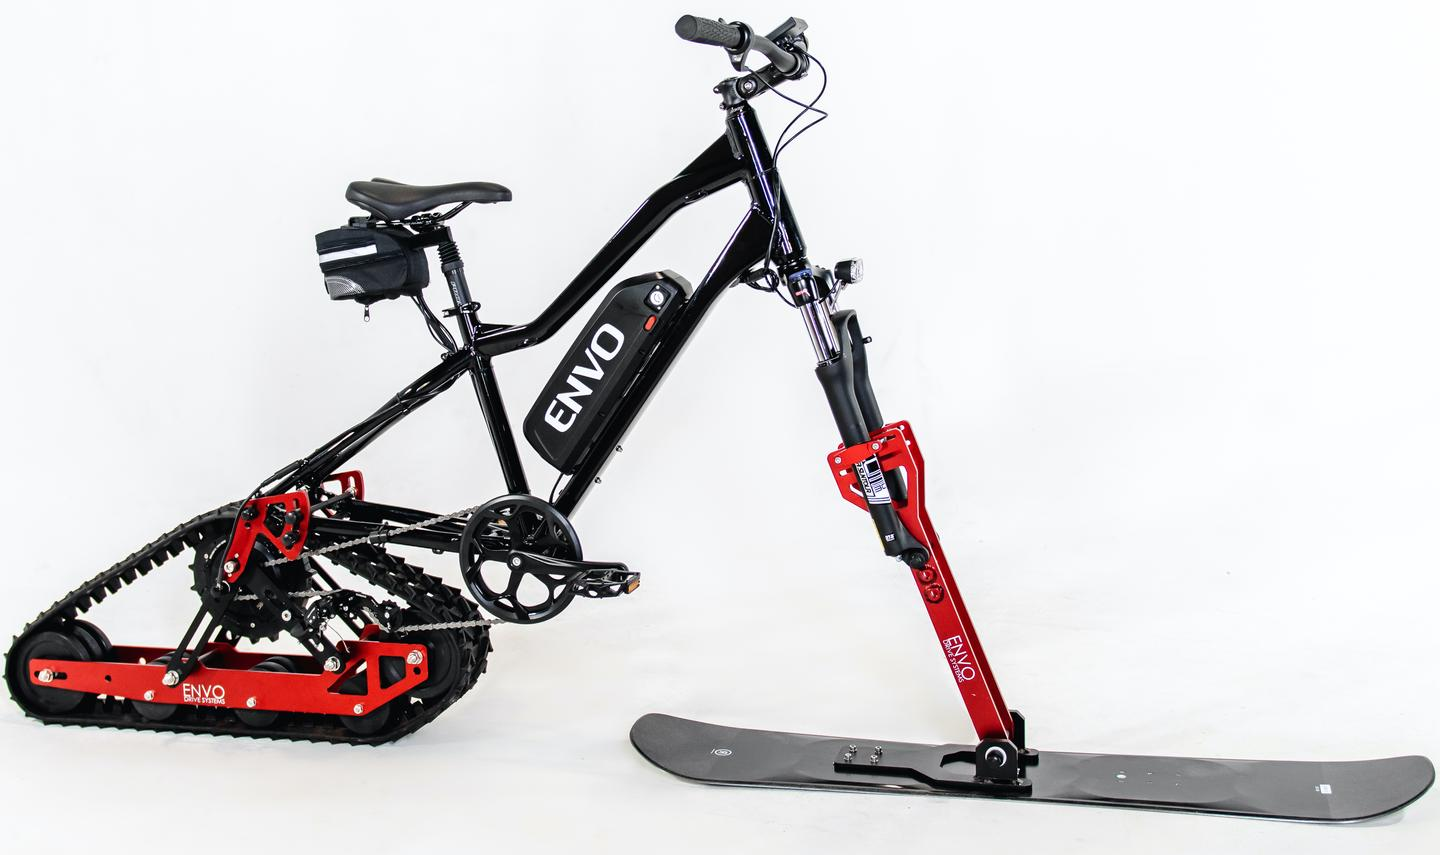 According to Envo, the kit delivers a top motor-assisted speed of 18 km/h (11 mph) and is good for a range of about 10 km (6 miles) – or two hours of use – per 8-hour charge